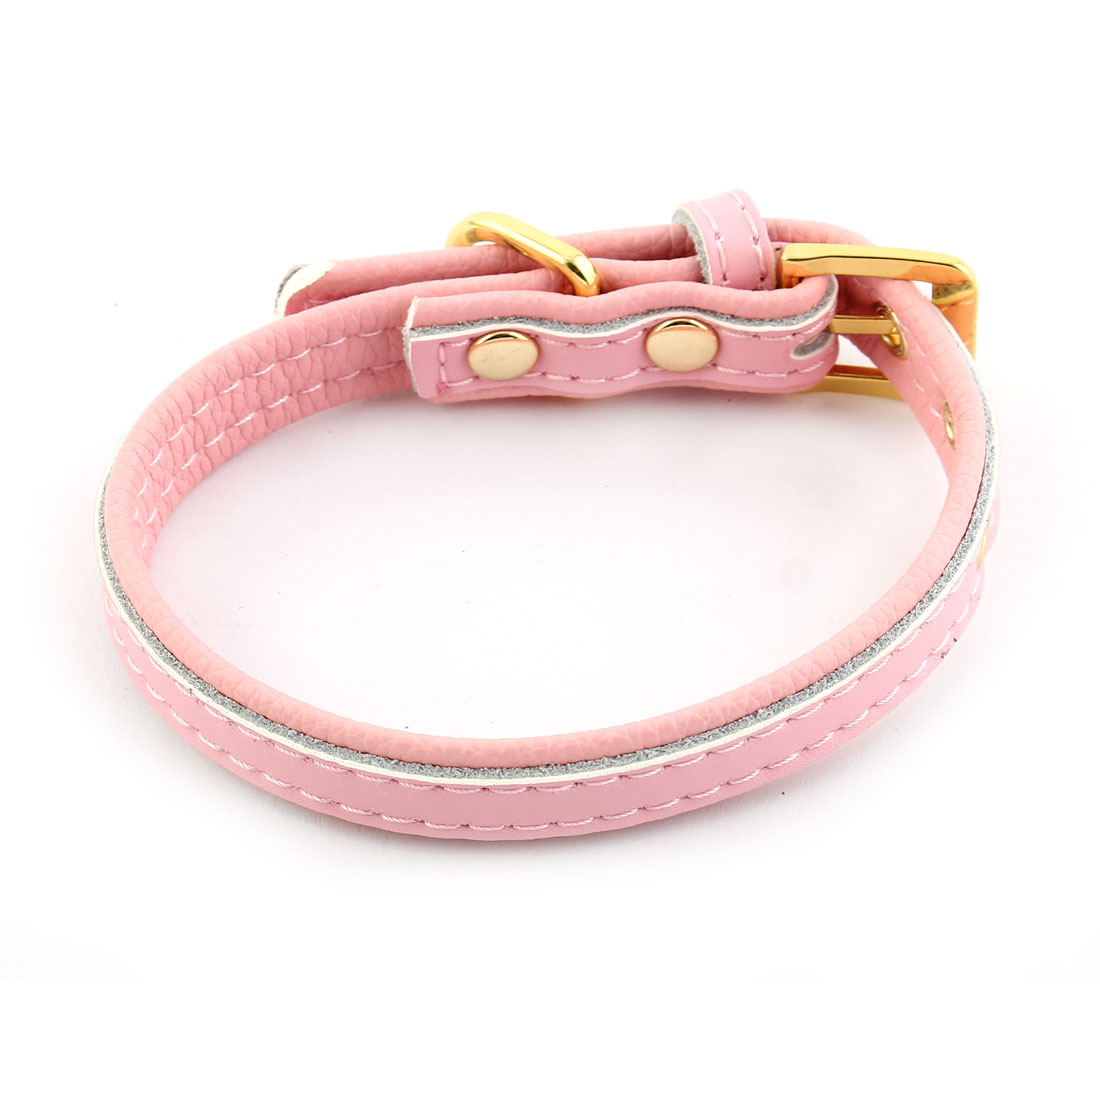 Faux Leather Adjustable Belt Metal Pin Buckle Pet Cat Dog Collar Pink Size XS